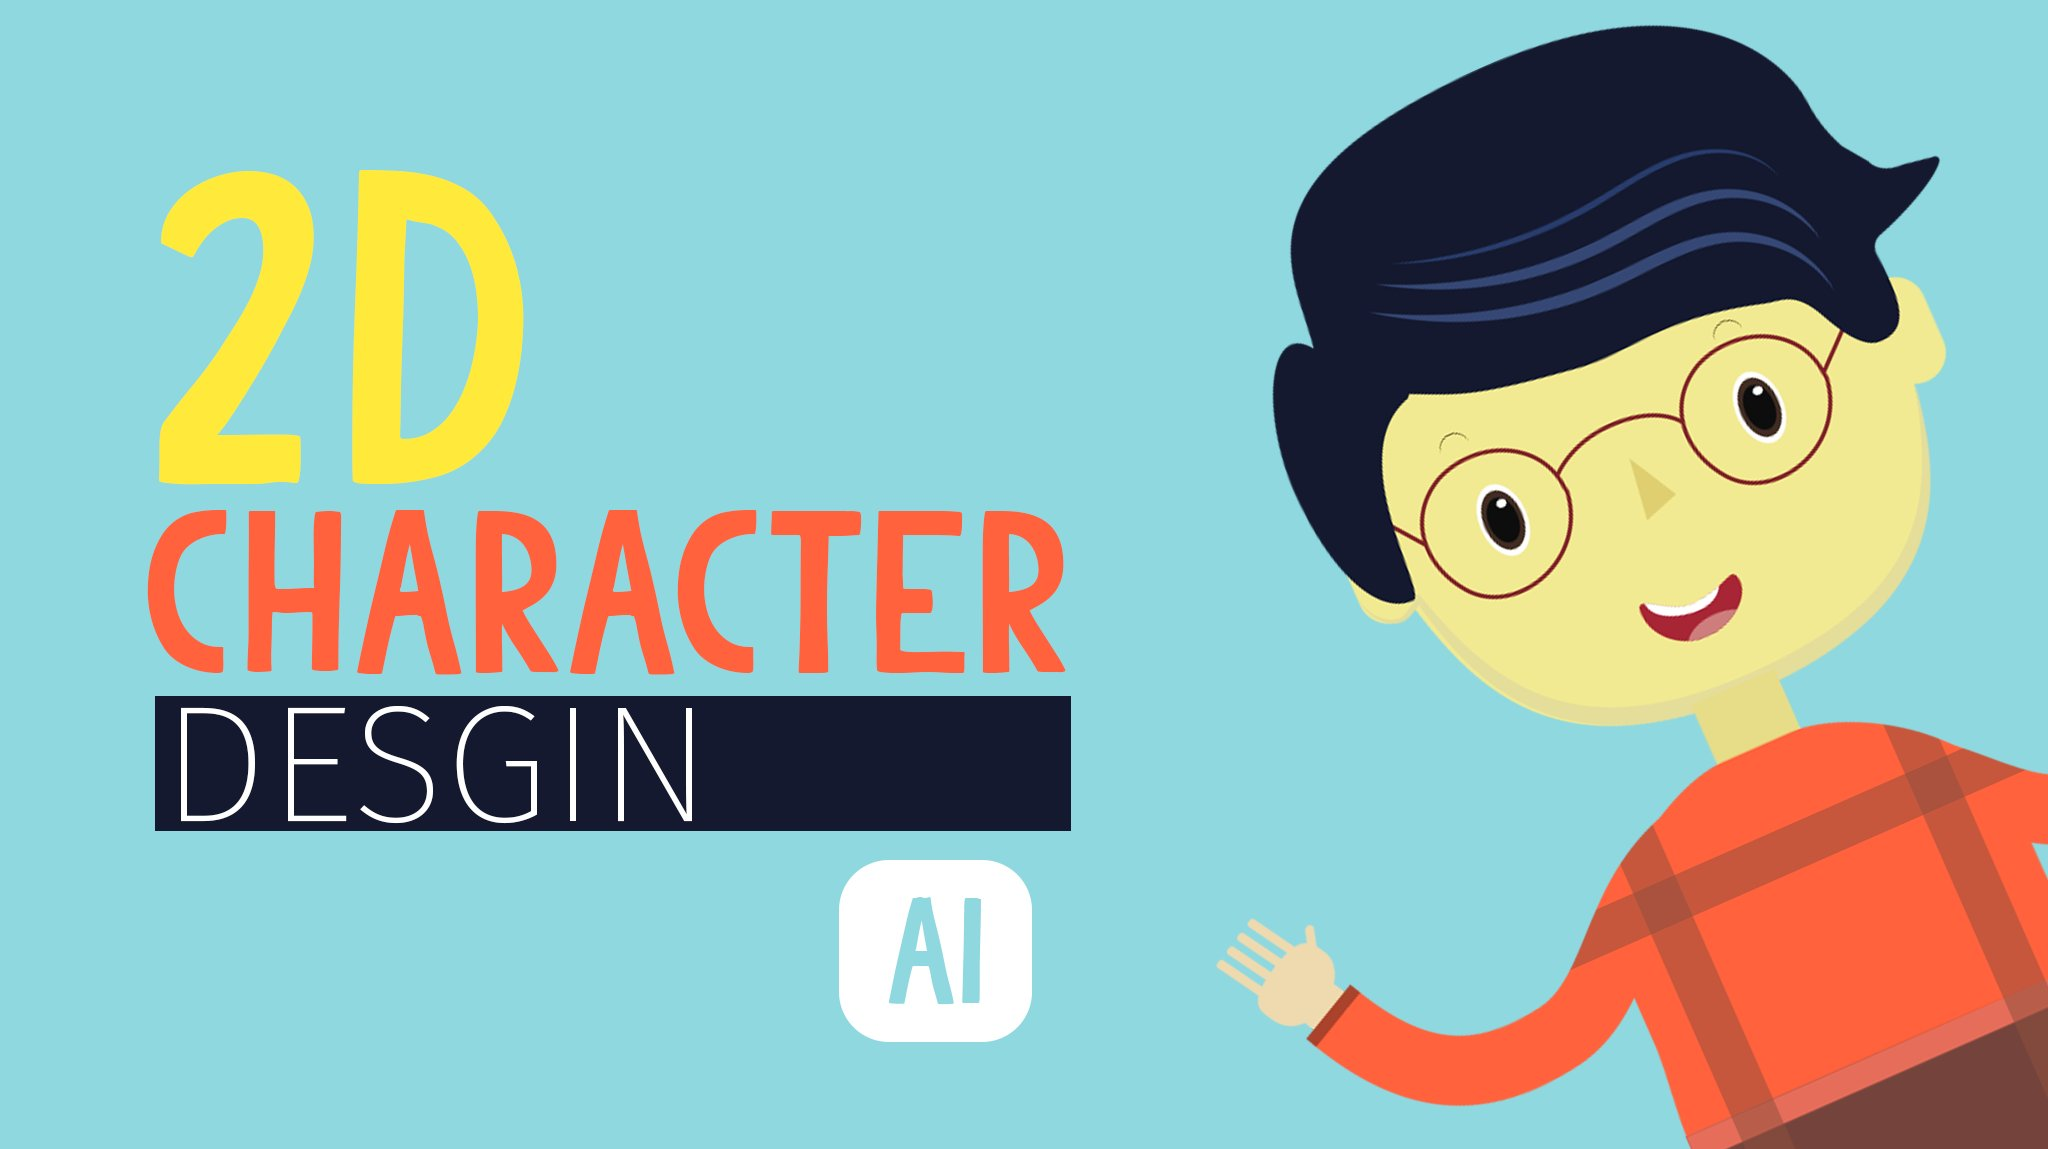 Adobe Illustrator Essentials For Character Design : D character design in adobe illustrator hu shahir